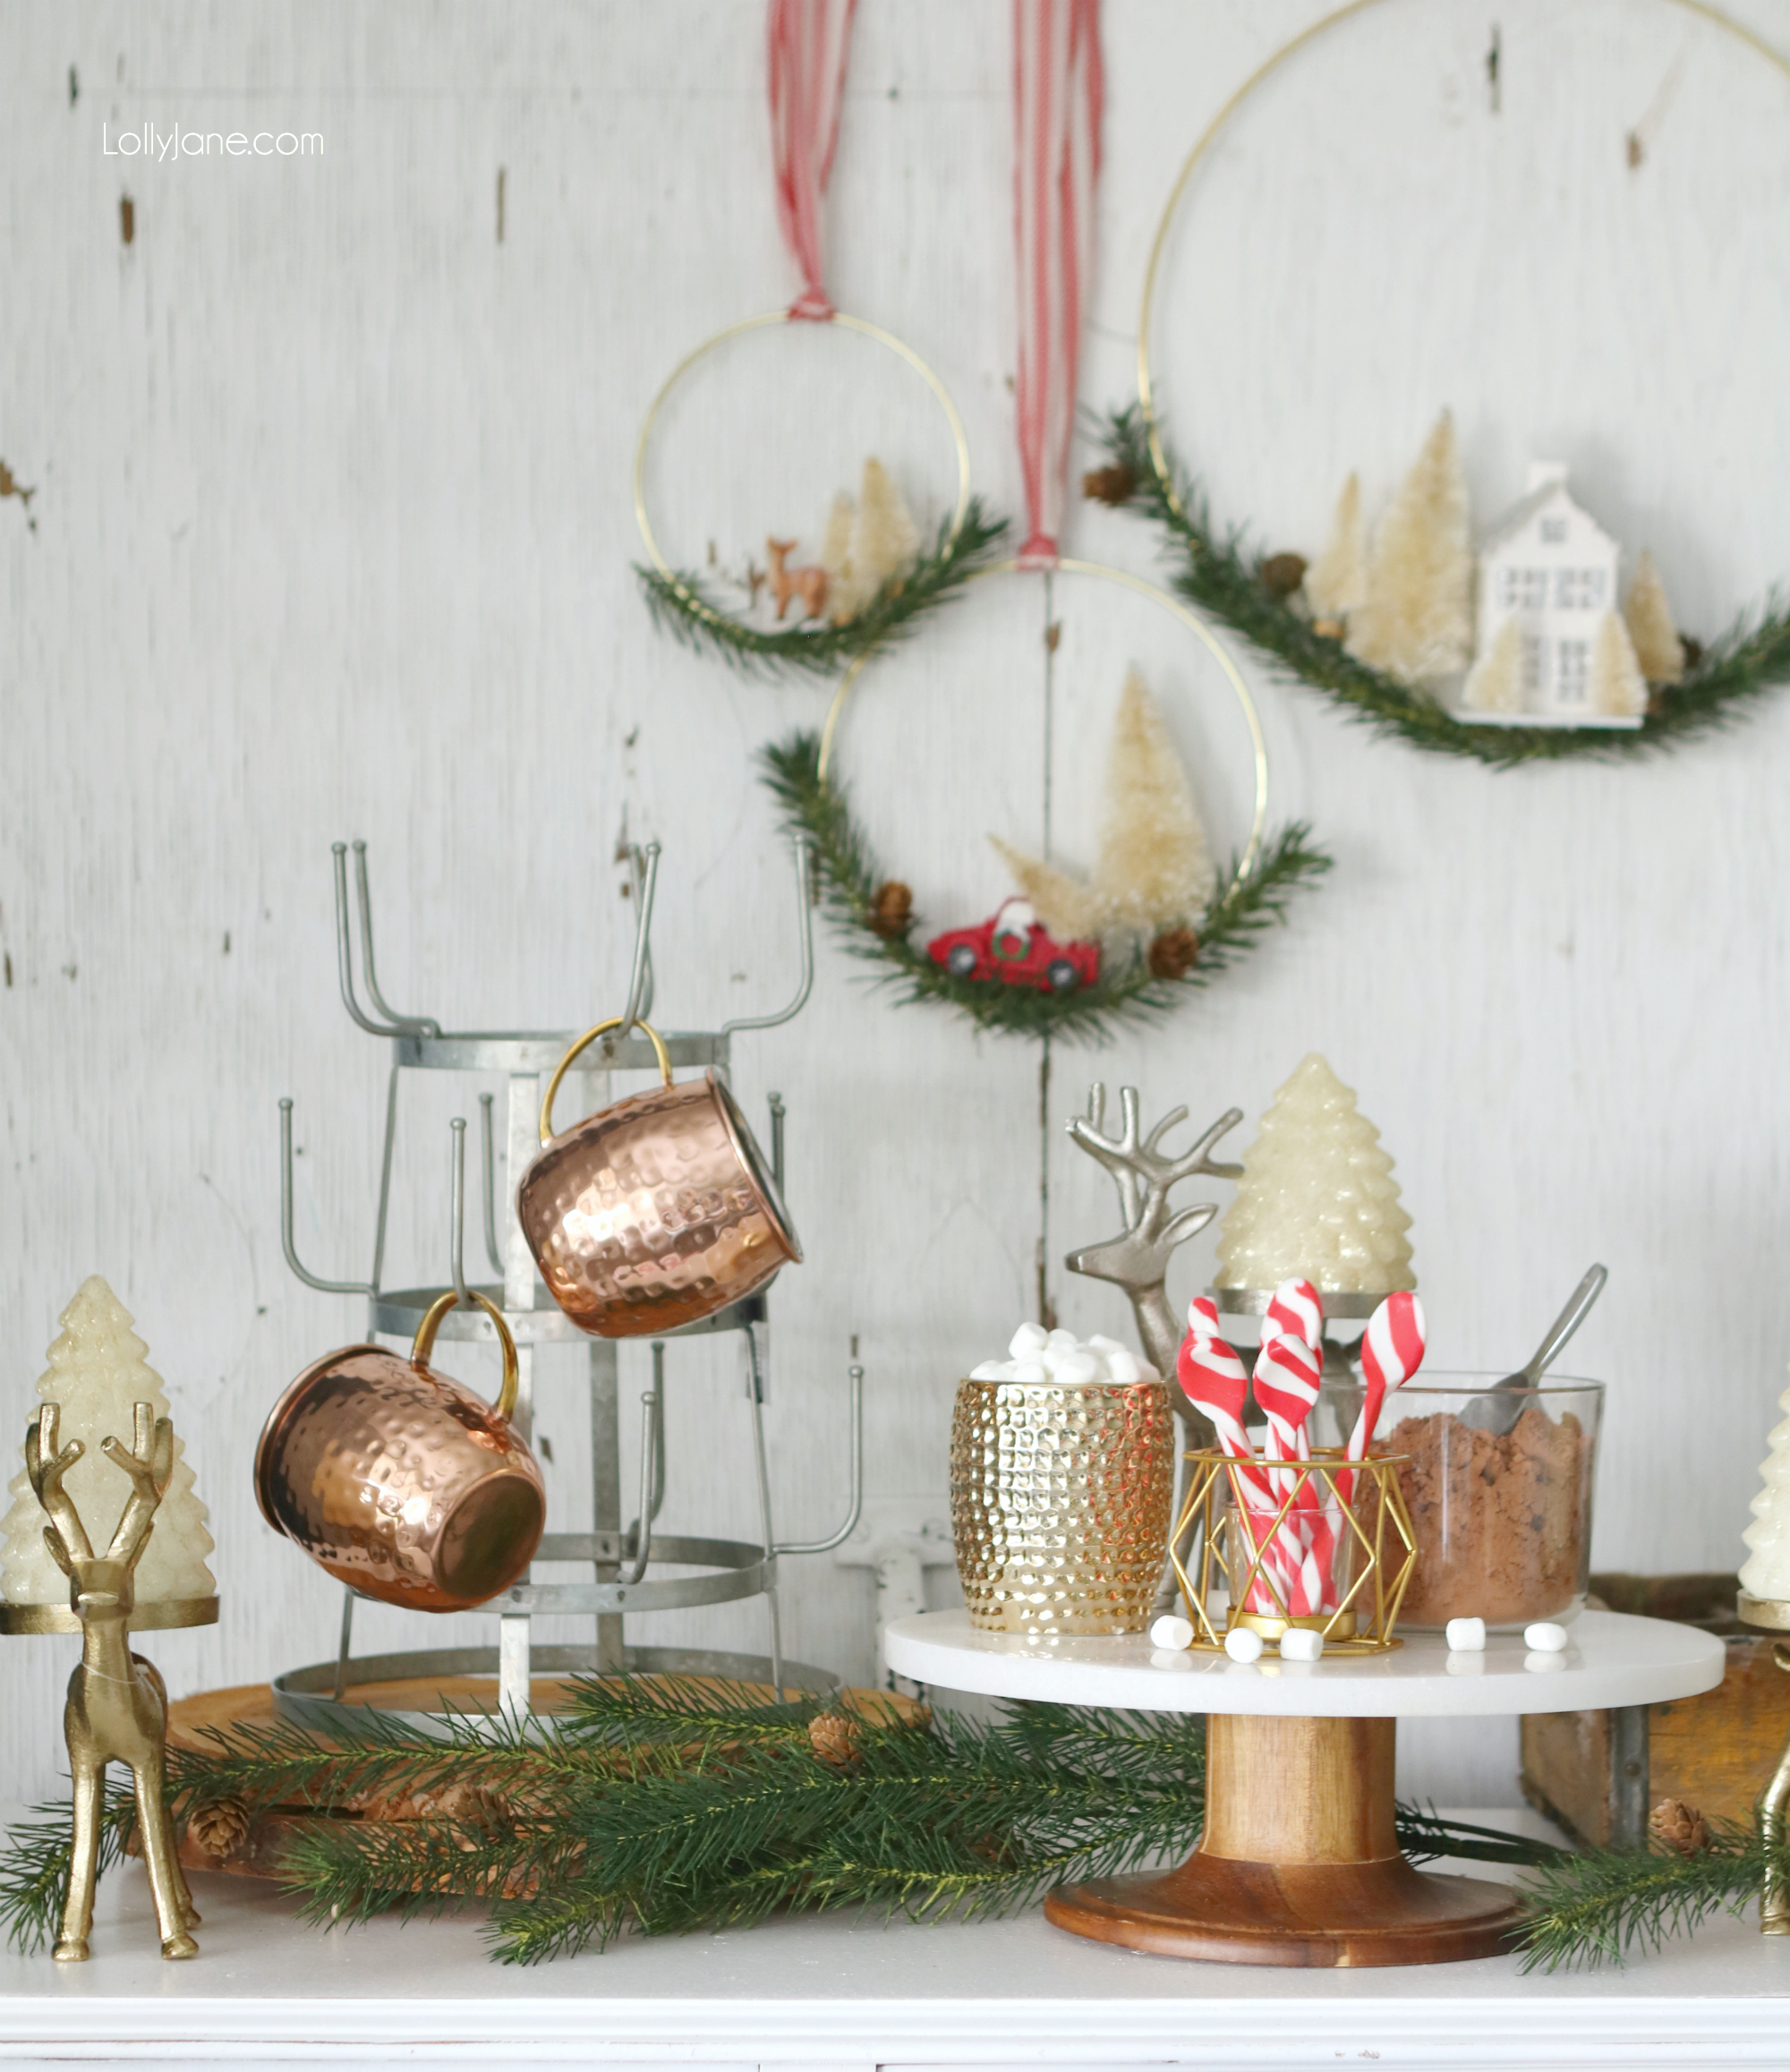 Home Design Gift Ideas: Popular Home Decor Gift Ideas For Christmas